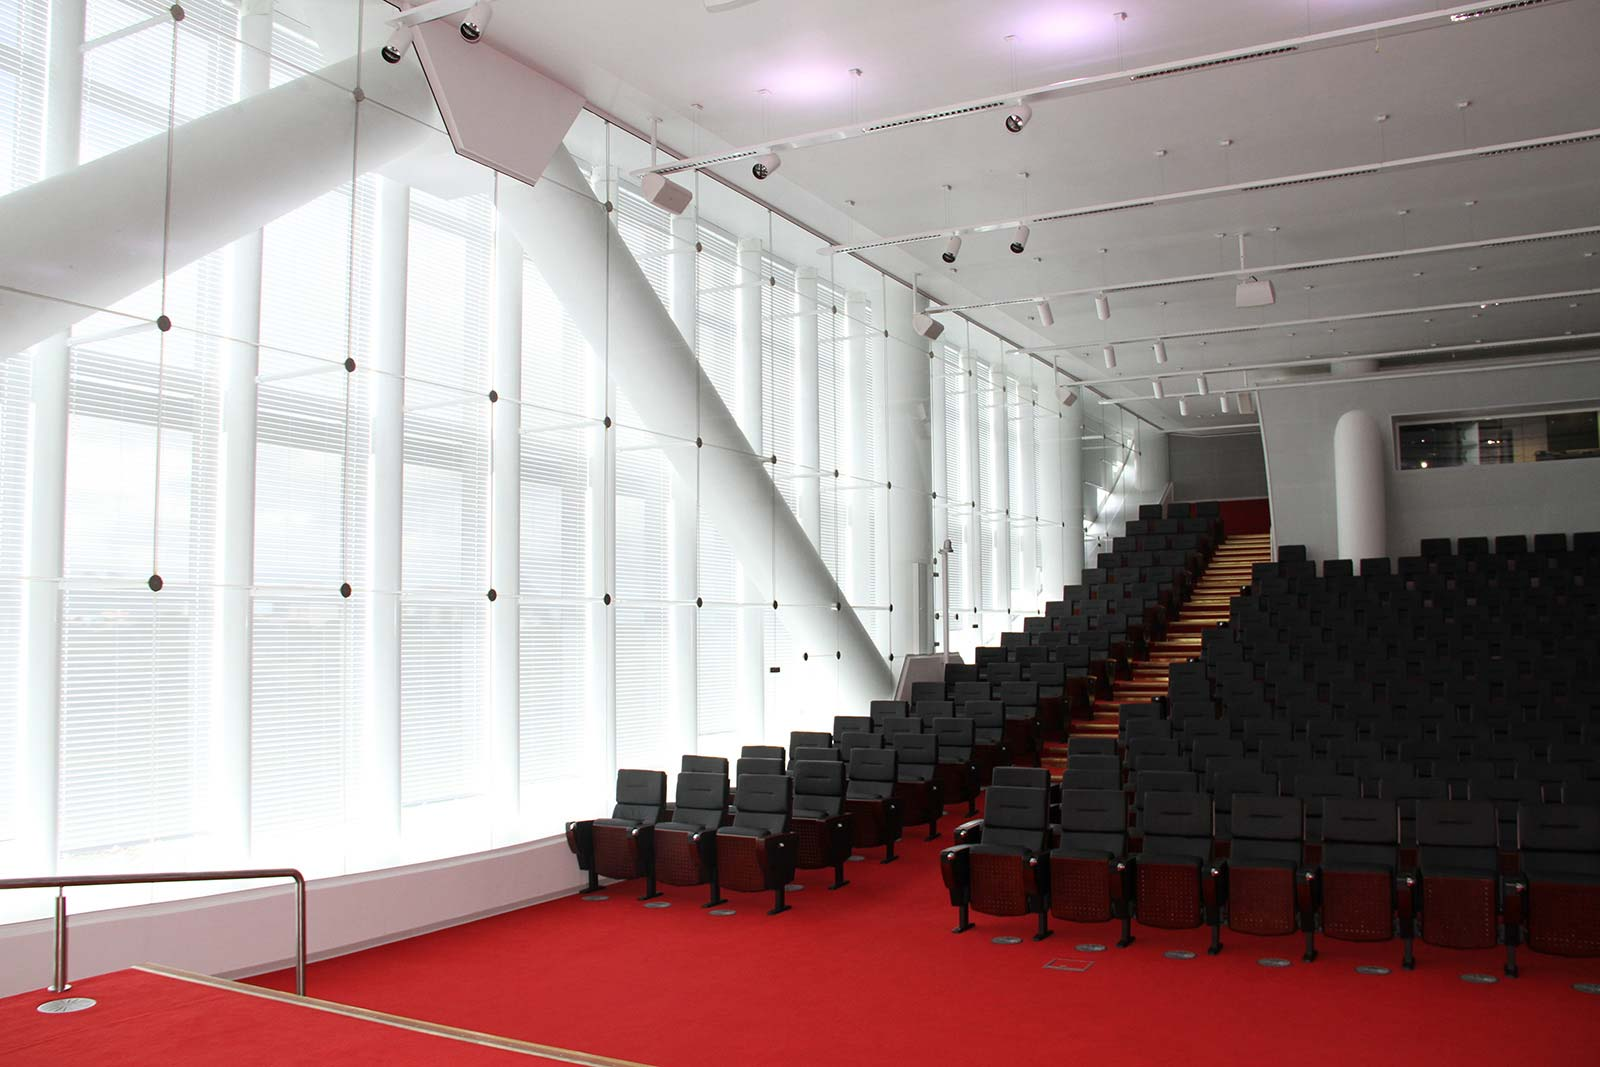 the-mauritius-commercial-bank-ebene-jean-francois-koenig-auditorium-view